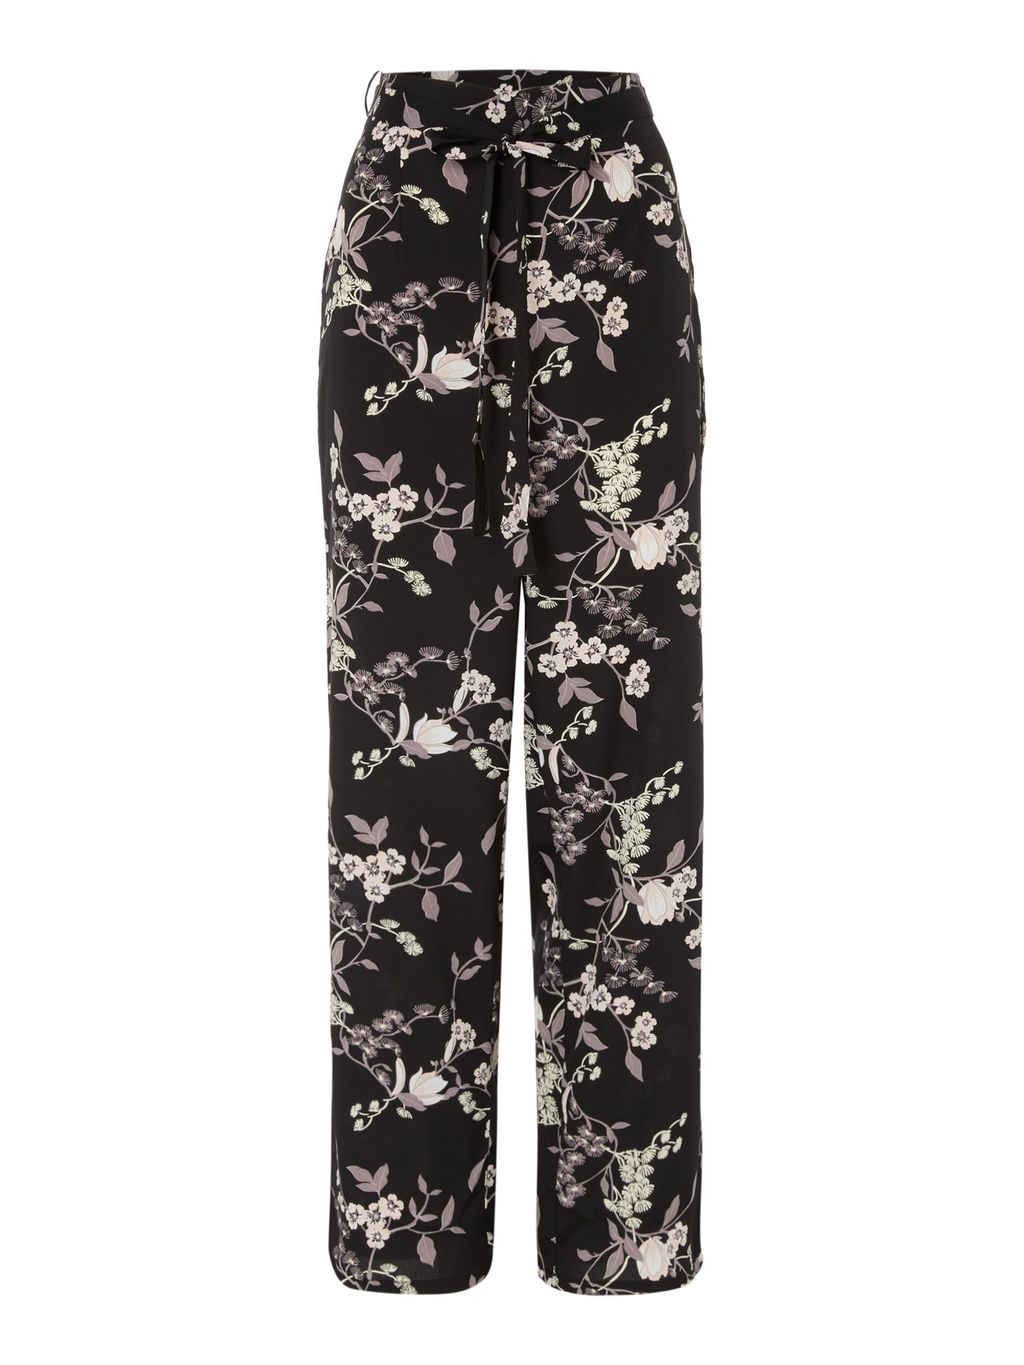 Ori Floral Trousers, Black - length: standard; waist: mid/regular rise; secondary colour: white; predominant colour: black; occasions: casual; fibres: polyester/polyamide - 100%; fit: wide leg; pattern type: fabric; pattern: florals; texture group: woven light midweight; style: standard; multicoloured: multicoloured; season: s/s 2016; wardrobe: highlight